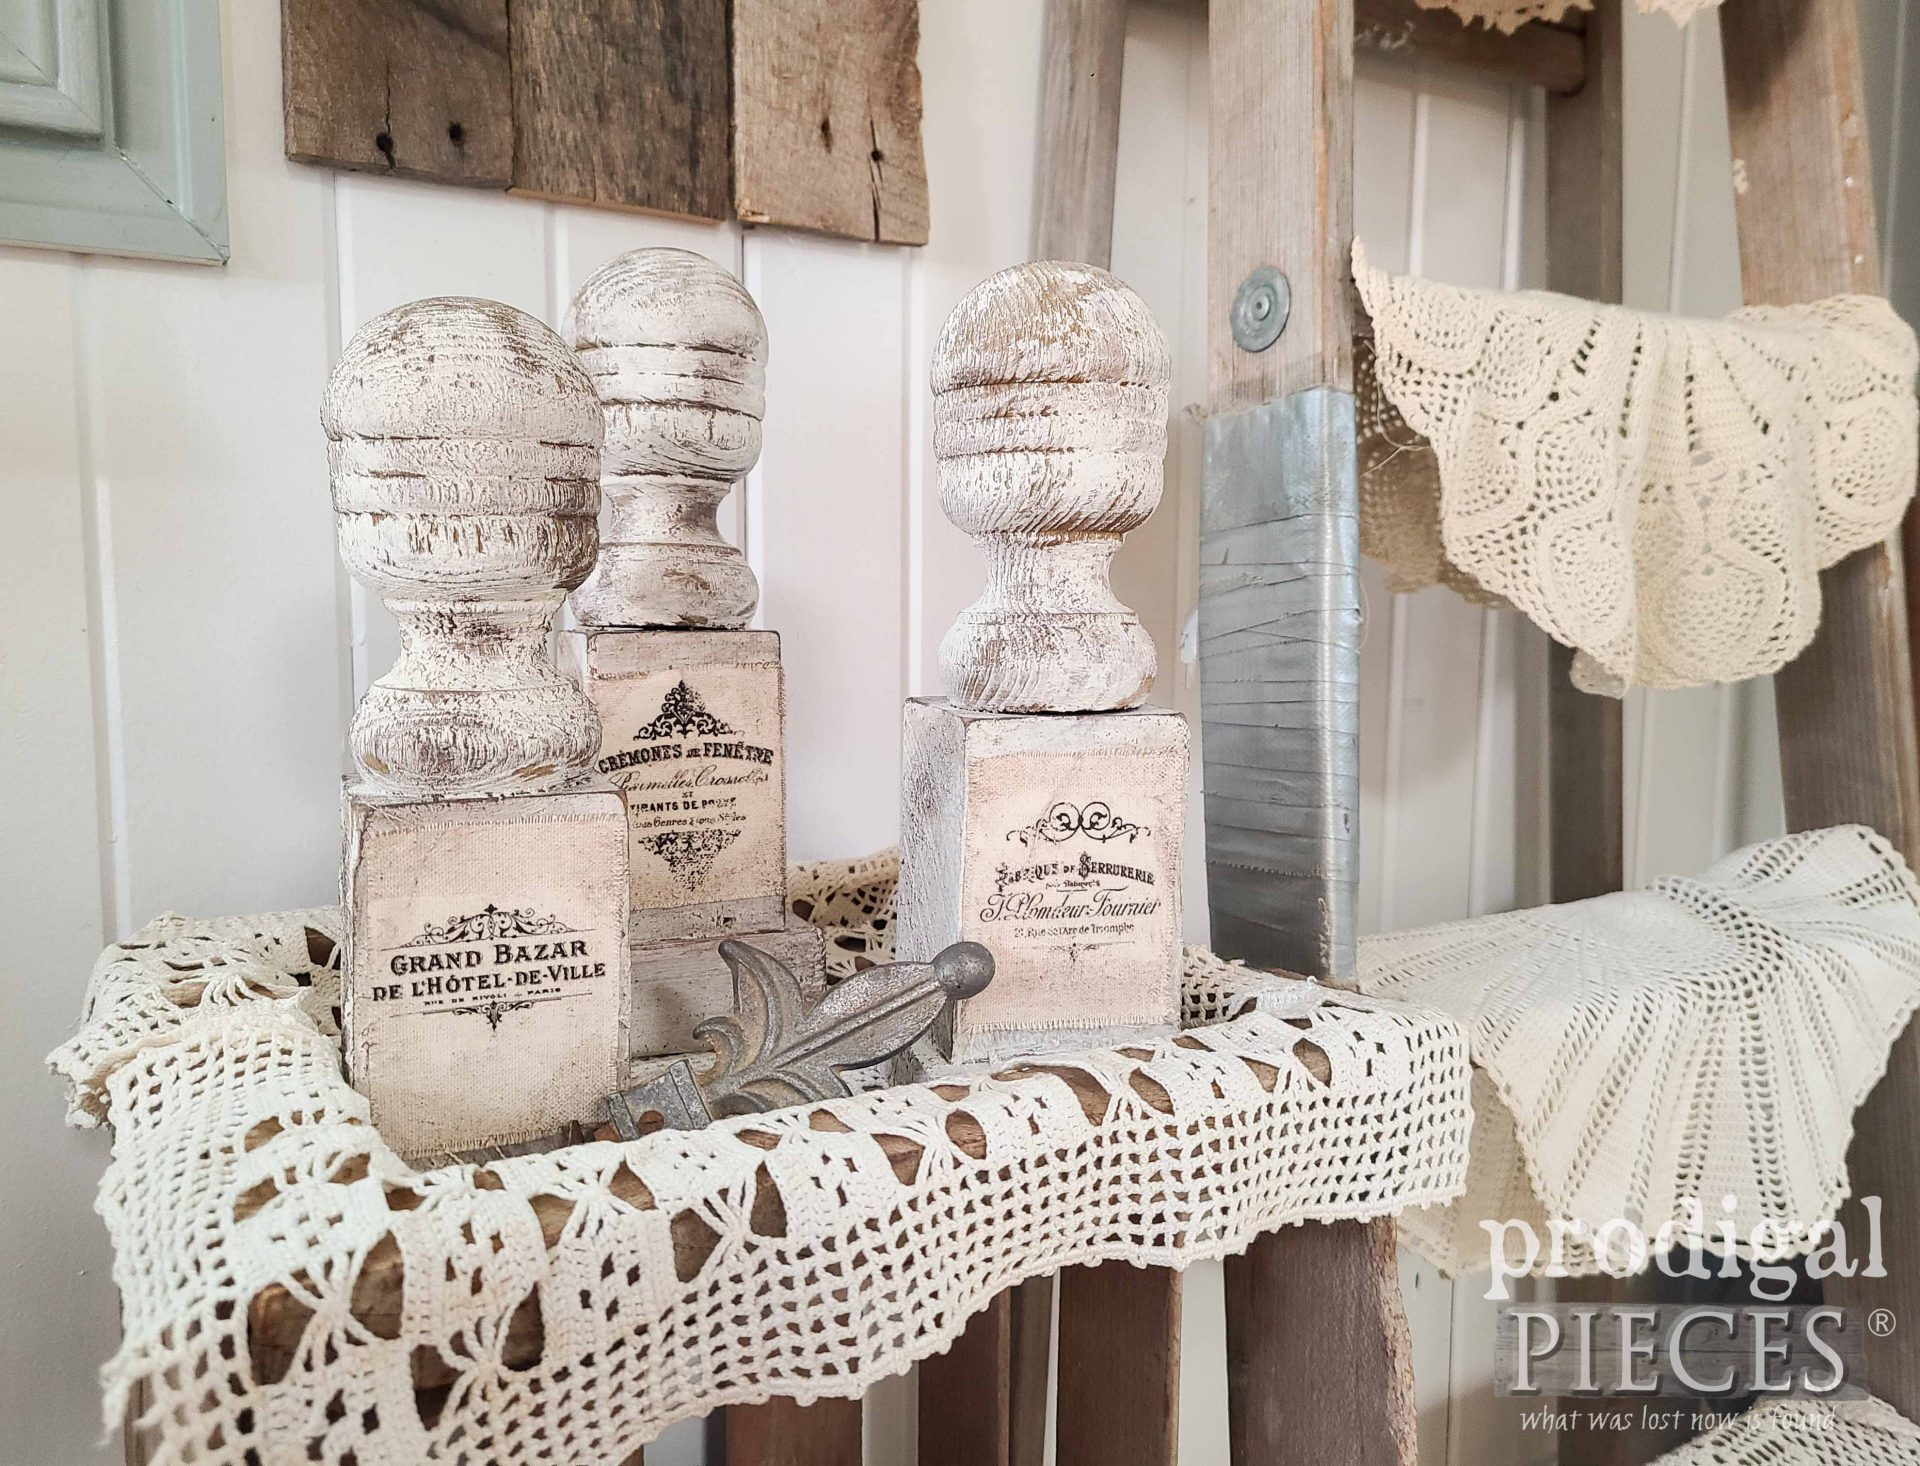 Reclaimed Farmhouse Finials for Upcycled Decor by Larissa of Prodigal Pieces | prodigalpieces.com #prodigalpieces #farmhouse #diy #home